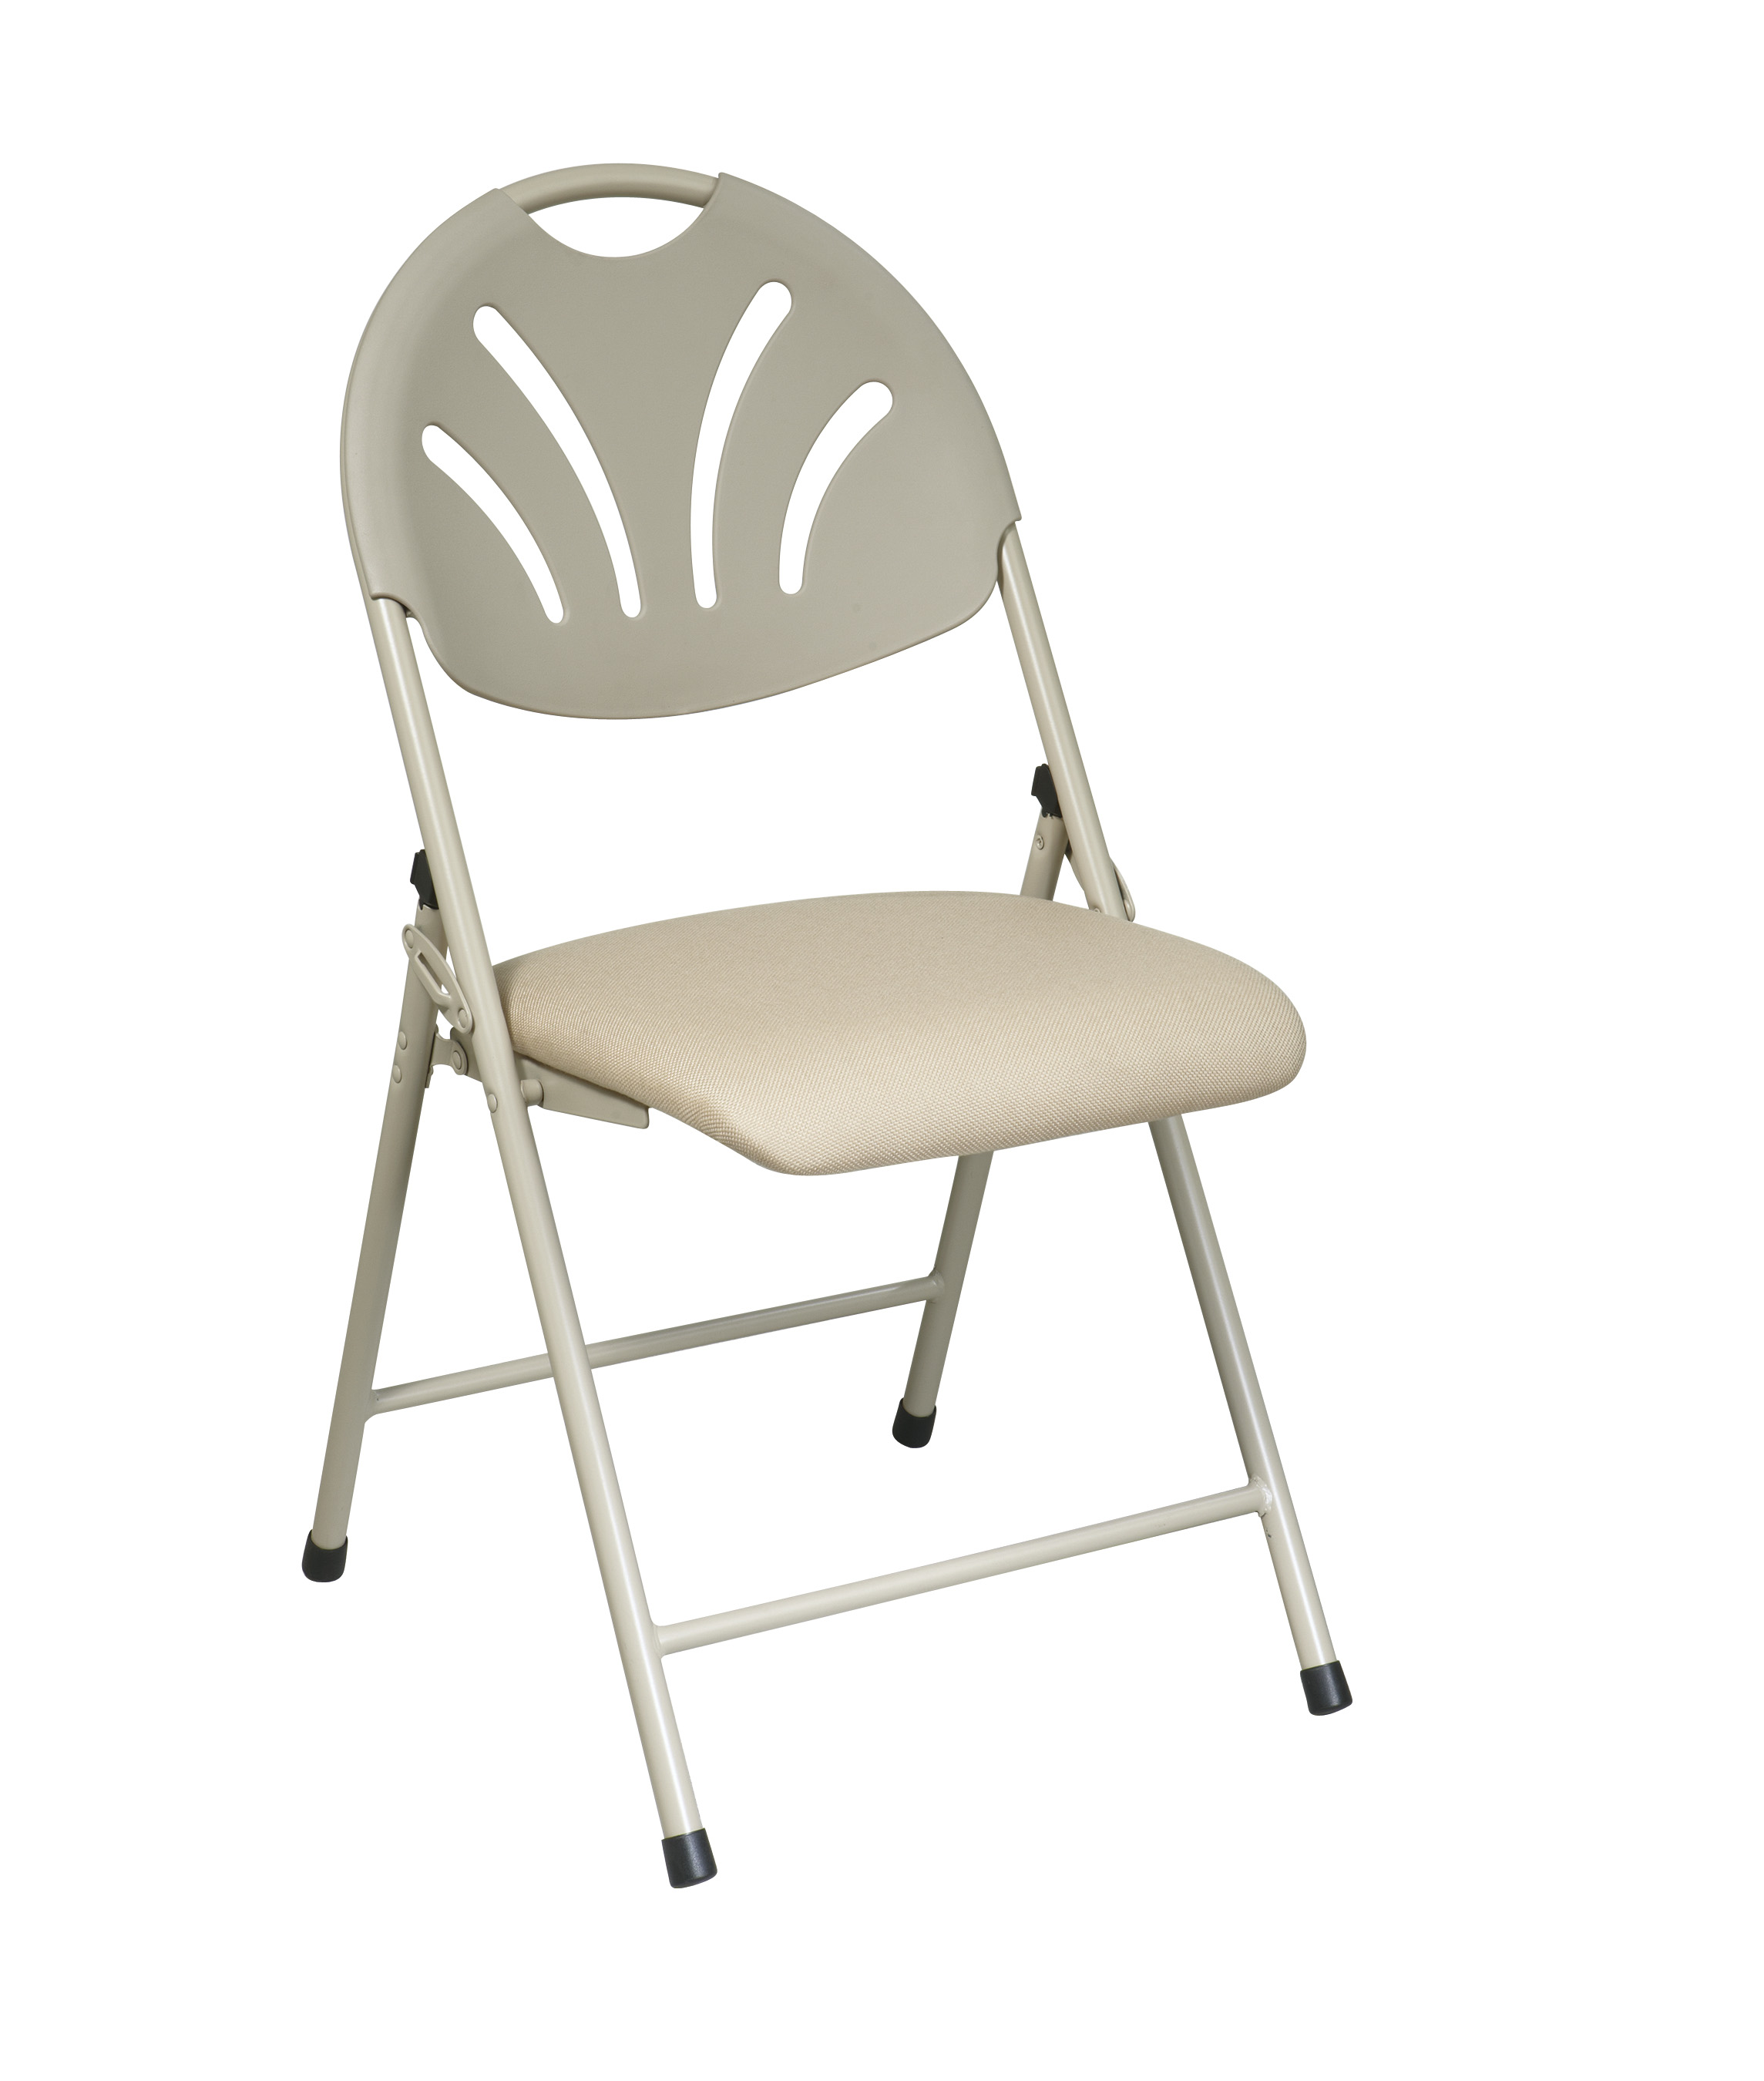 Fabric Folding Chairs Office Star Fc8100nbg 11 Folding Chair With Fabric Seat